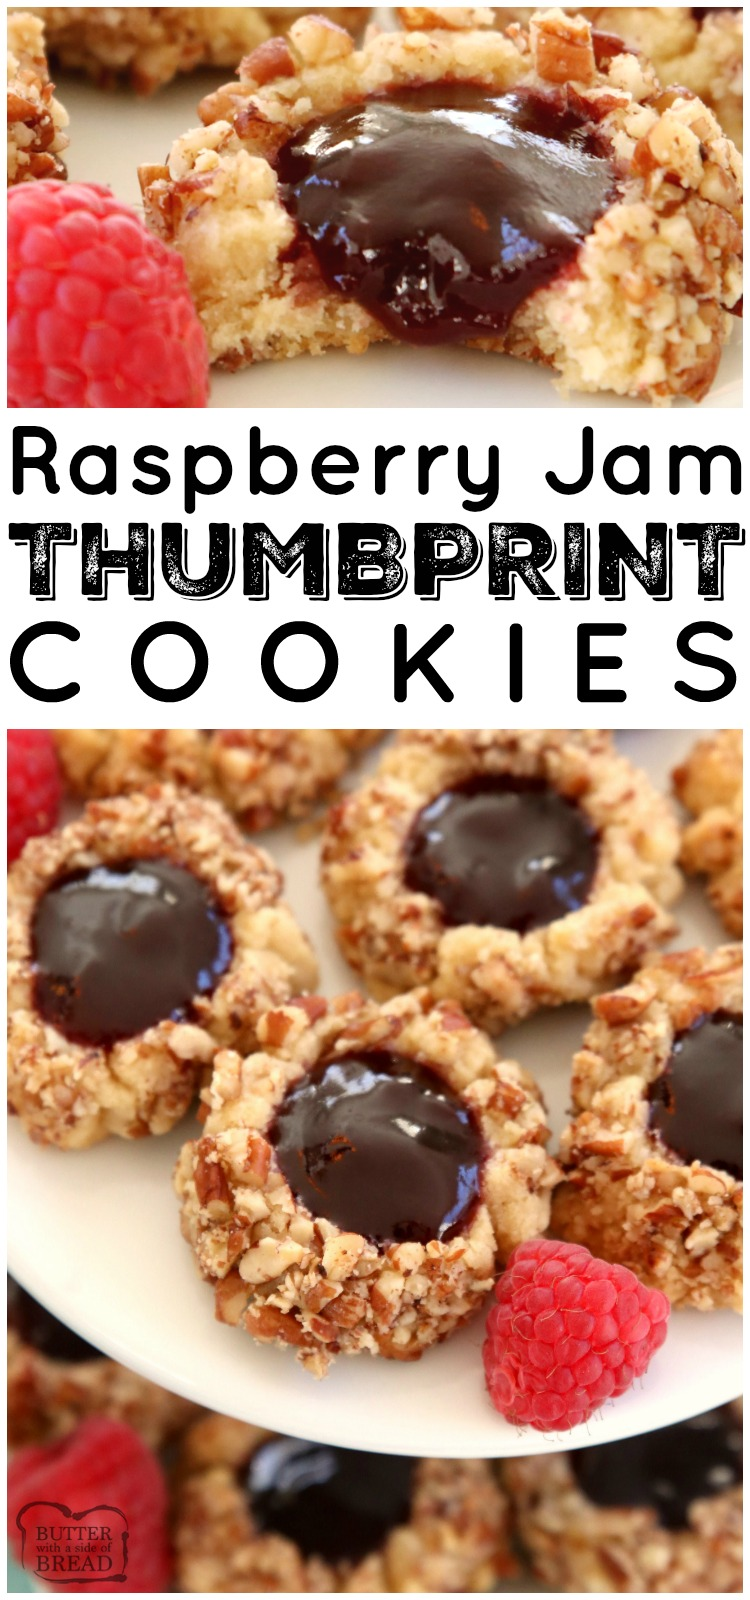 Raspberry Jam Thumbprint Cookies are a classic shortbread cookie rolled in pecans, baked & filled with sweet raspberry jam. Buttery Christmas cookie recipe that everyone looks forward to for holiday cookie exchanges! #Cookies #thumbprint #baking #Christmas #holidays #raspberry #jam #thumbprintcookies #recipe #dessert from BUTTER WITH A SIDE OF BREAD